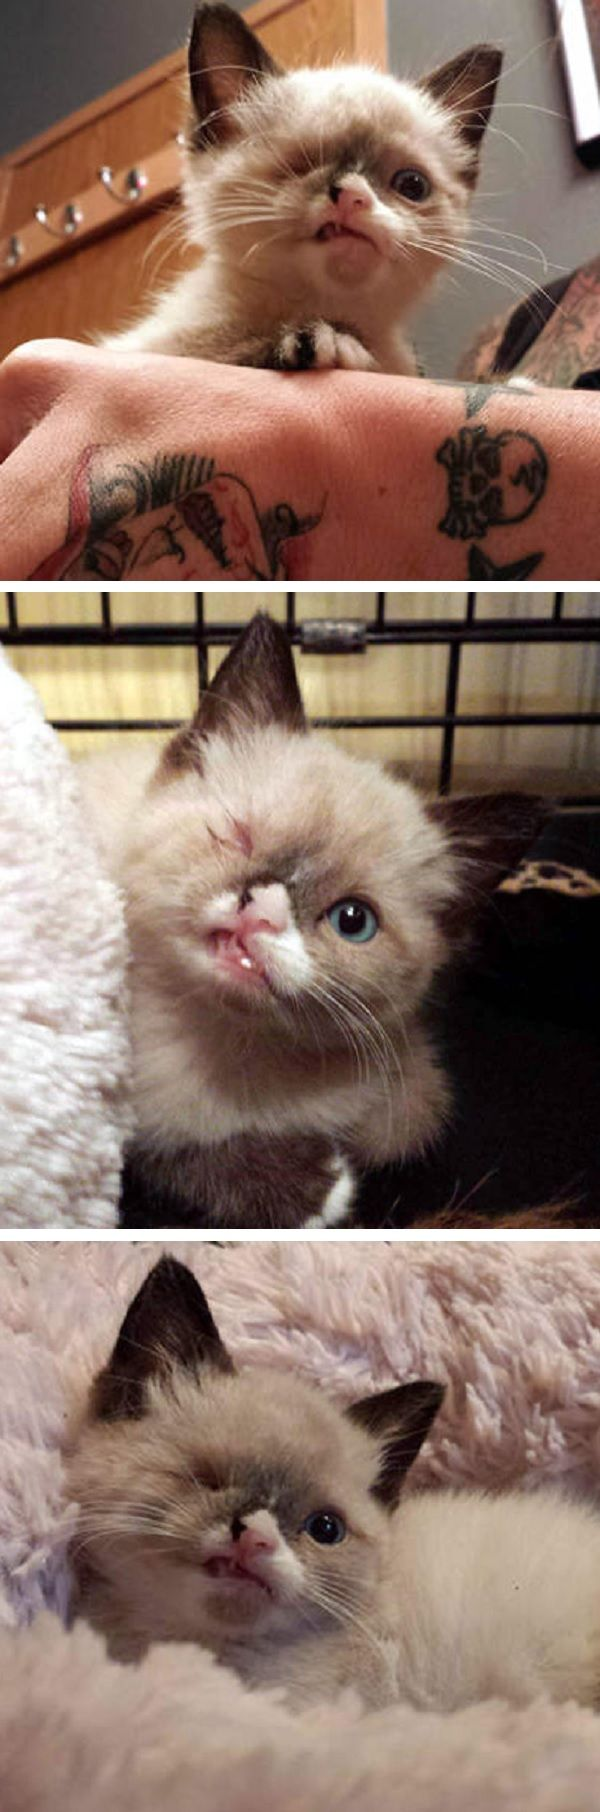 Kitten Survives A Raccoon Attack But What Happens Next Will Break Your Heart With Images Kittens Animals Kittens Cutest